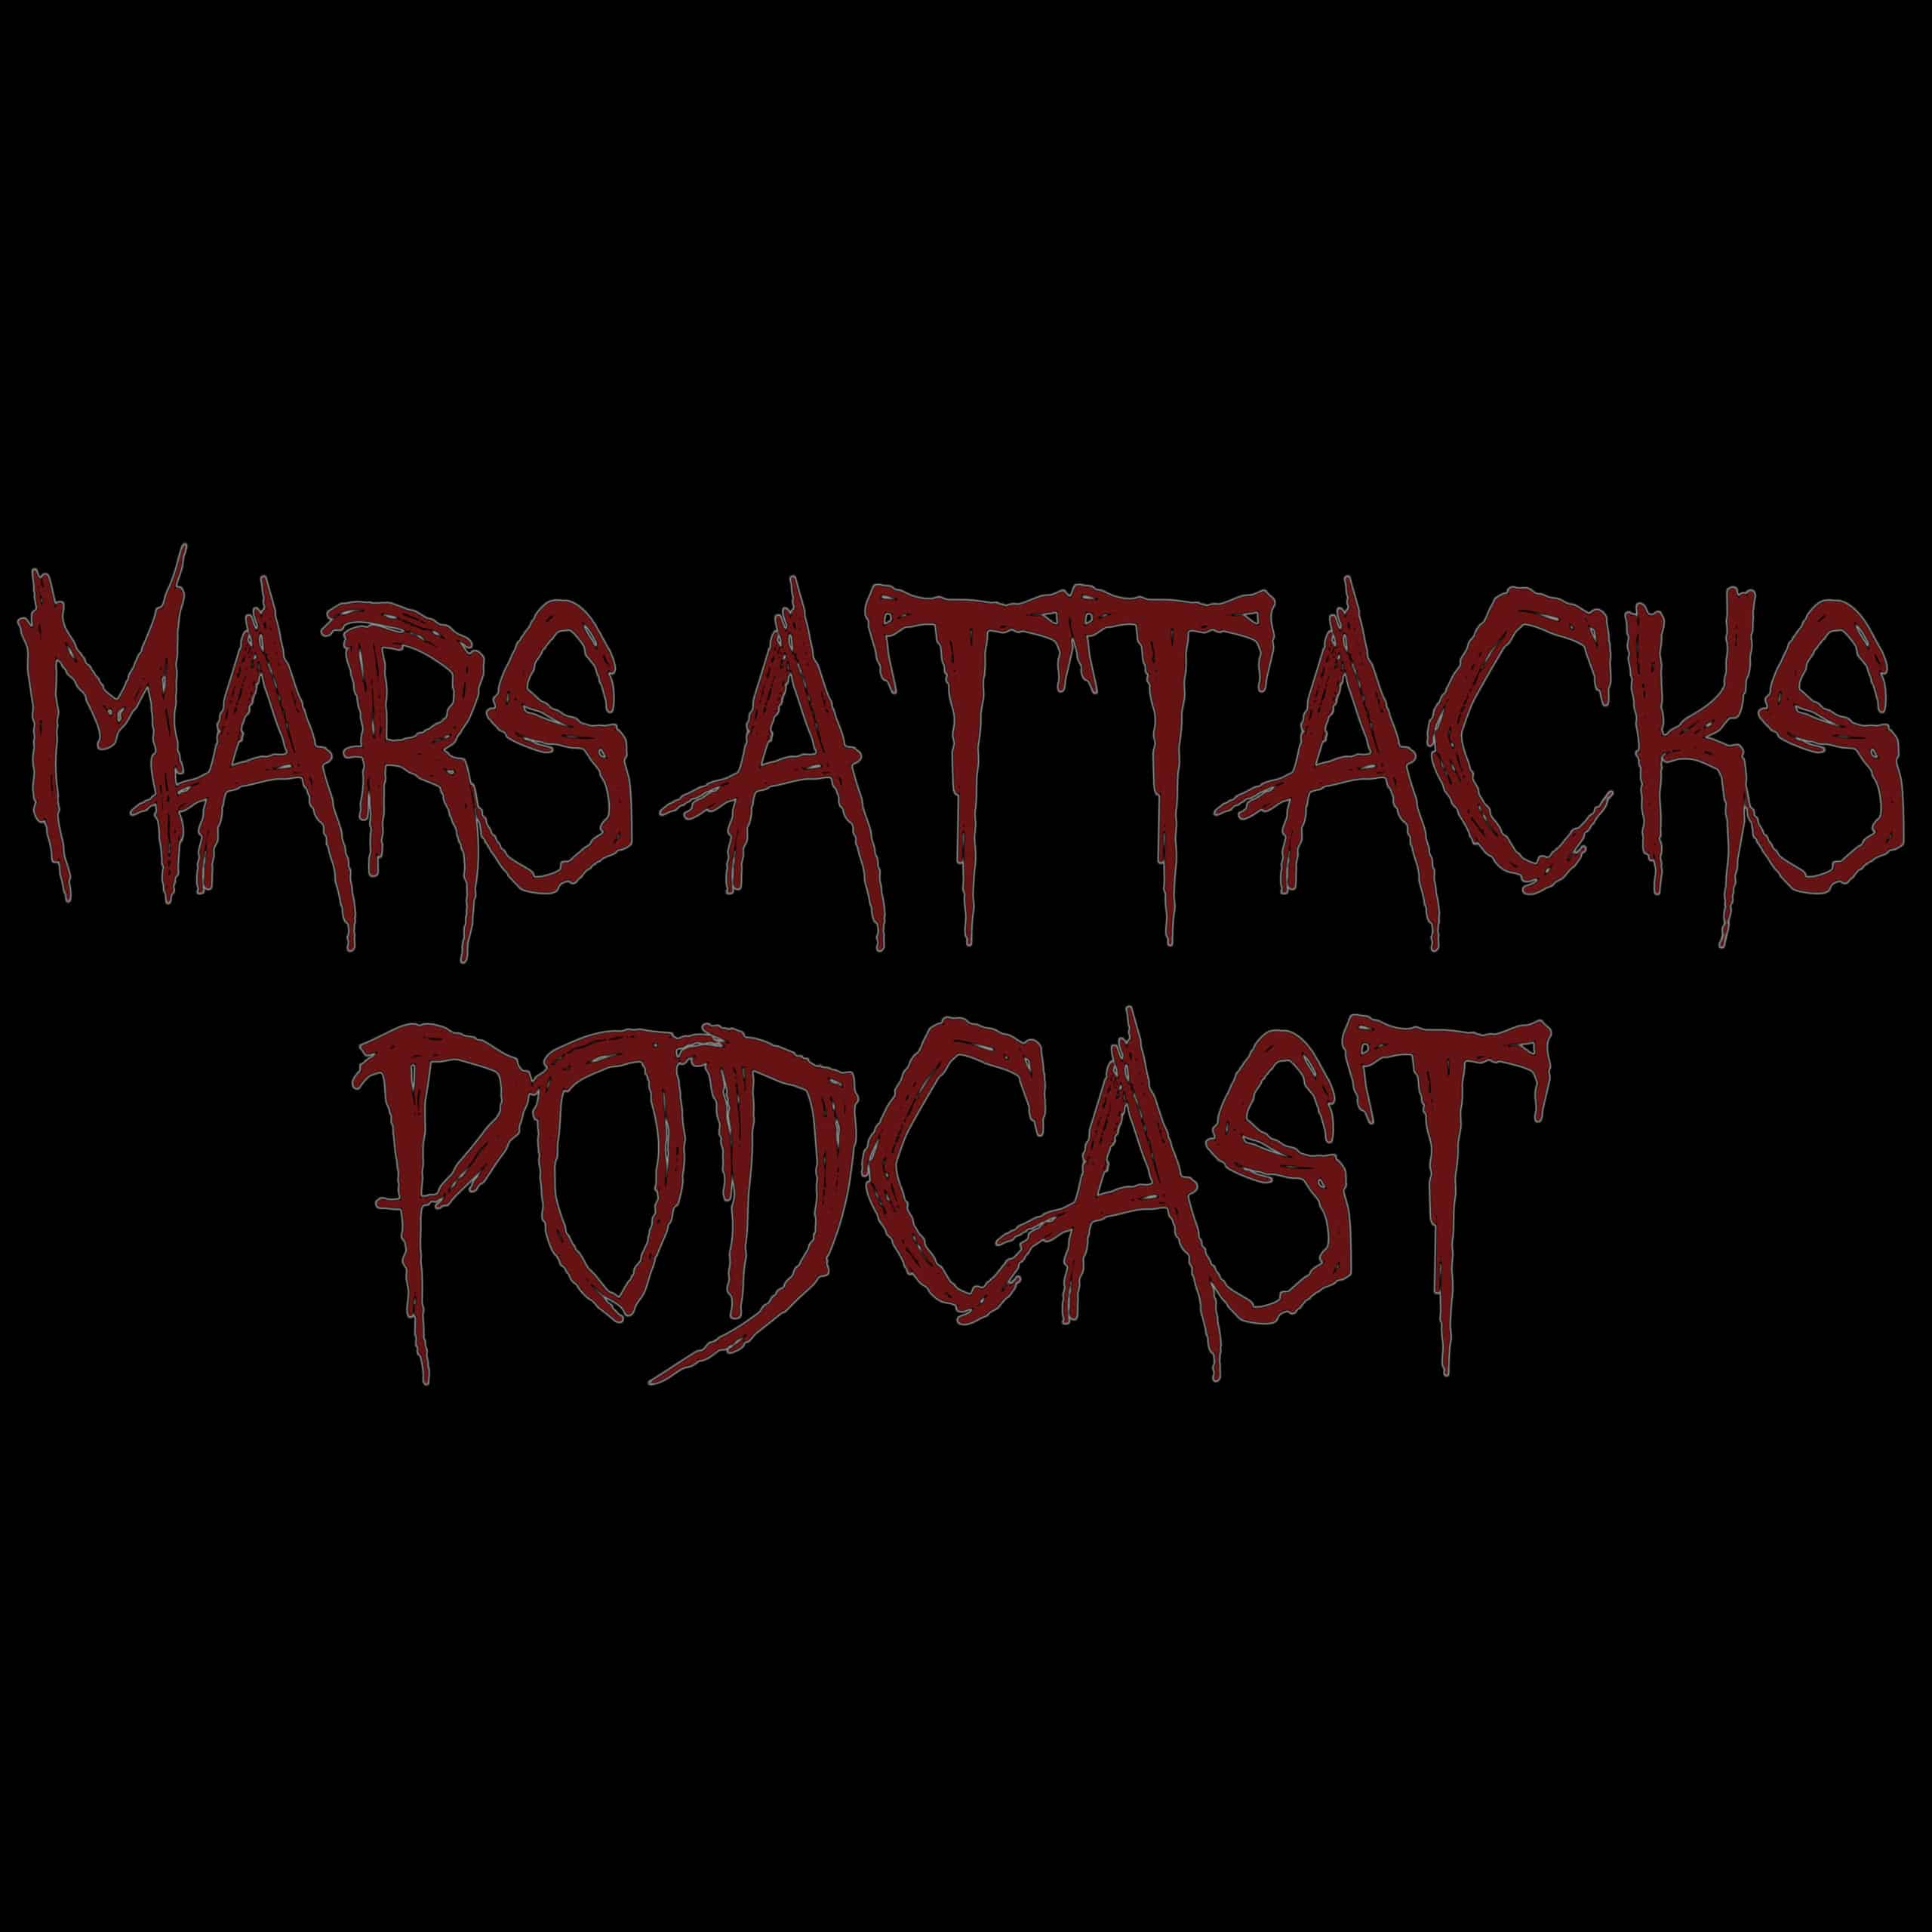 Mars Attacks Podcast